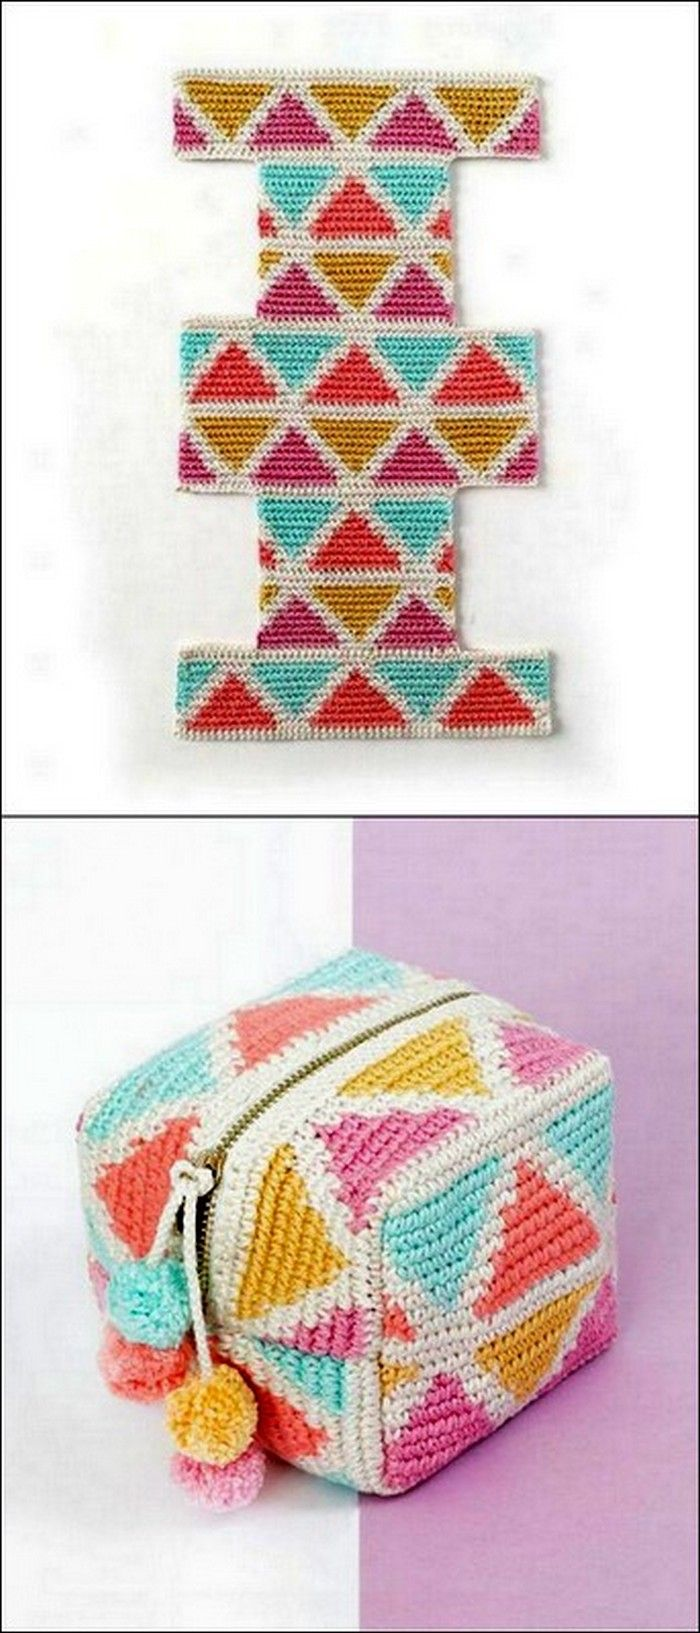 Colorful Crochet Bag Free Crochet Pattern #candles